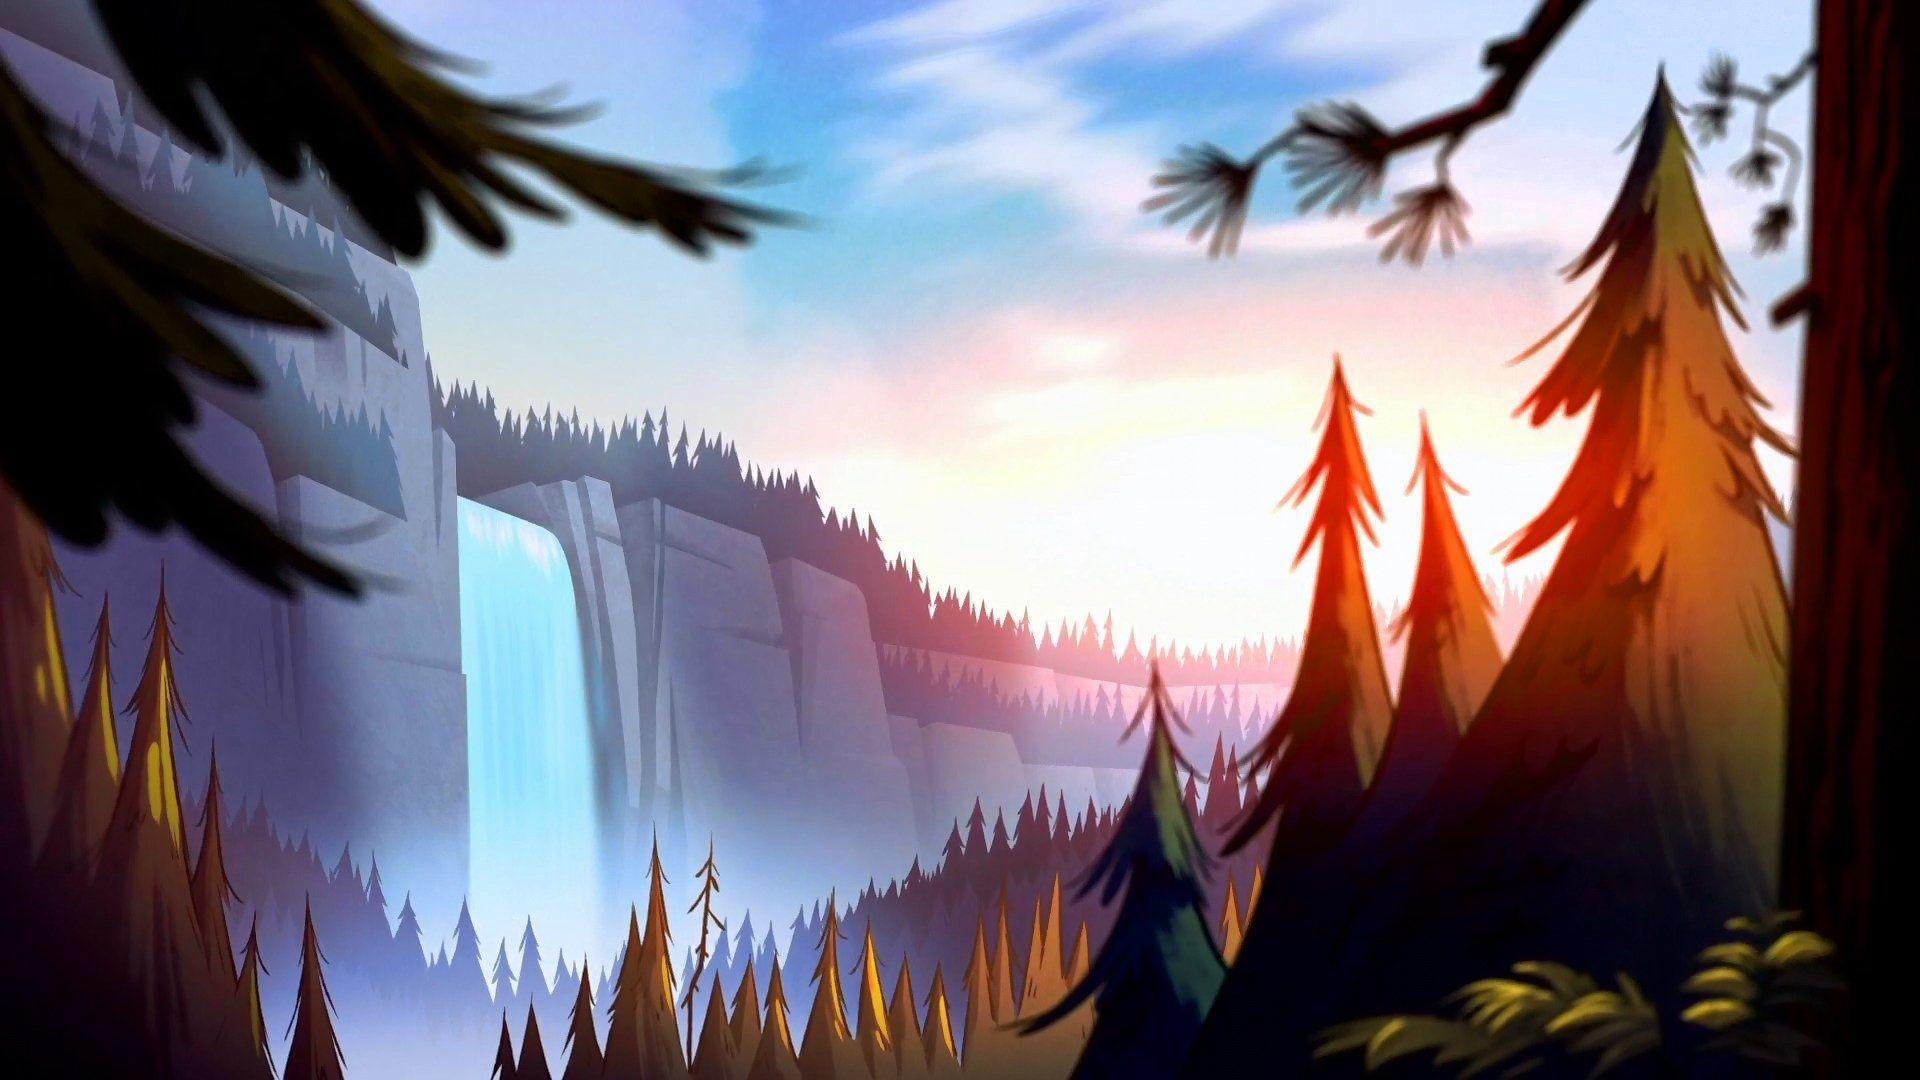 Gravity Falls Wallpapers - Wallpaper Cave